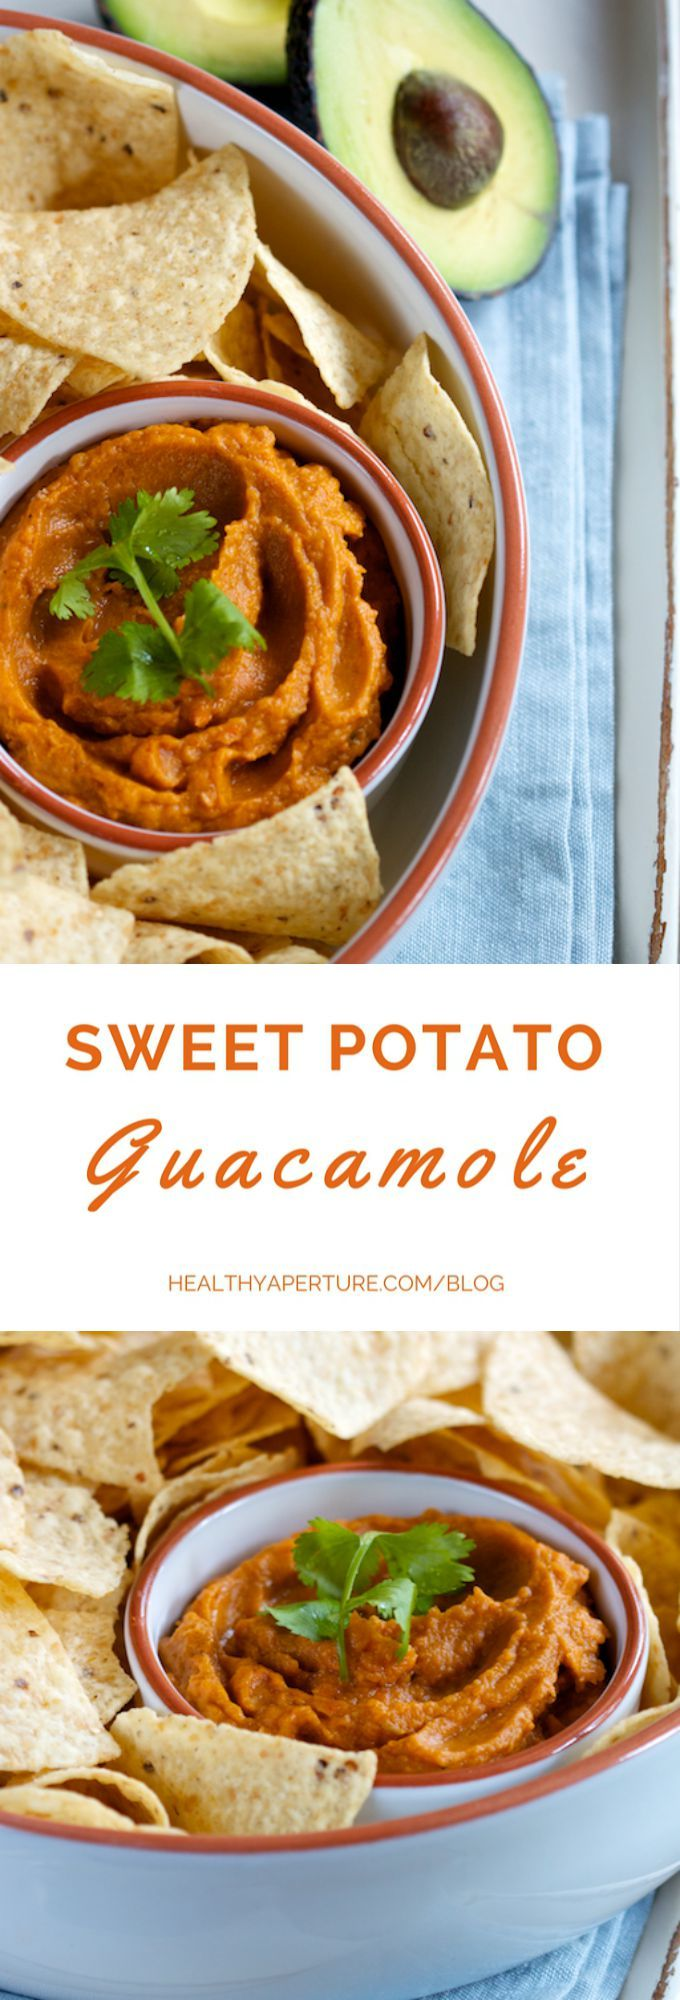 Sweet potato and avocado combine to create a sweet and savory guacamole, perfect for your favorite chips, veggies or tacos.